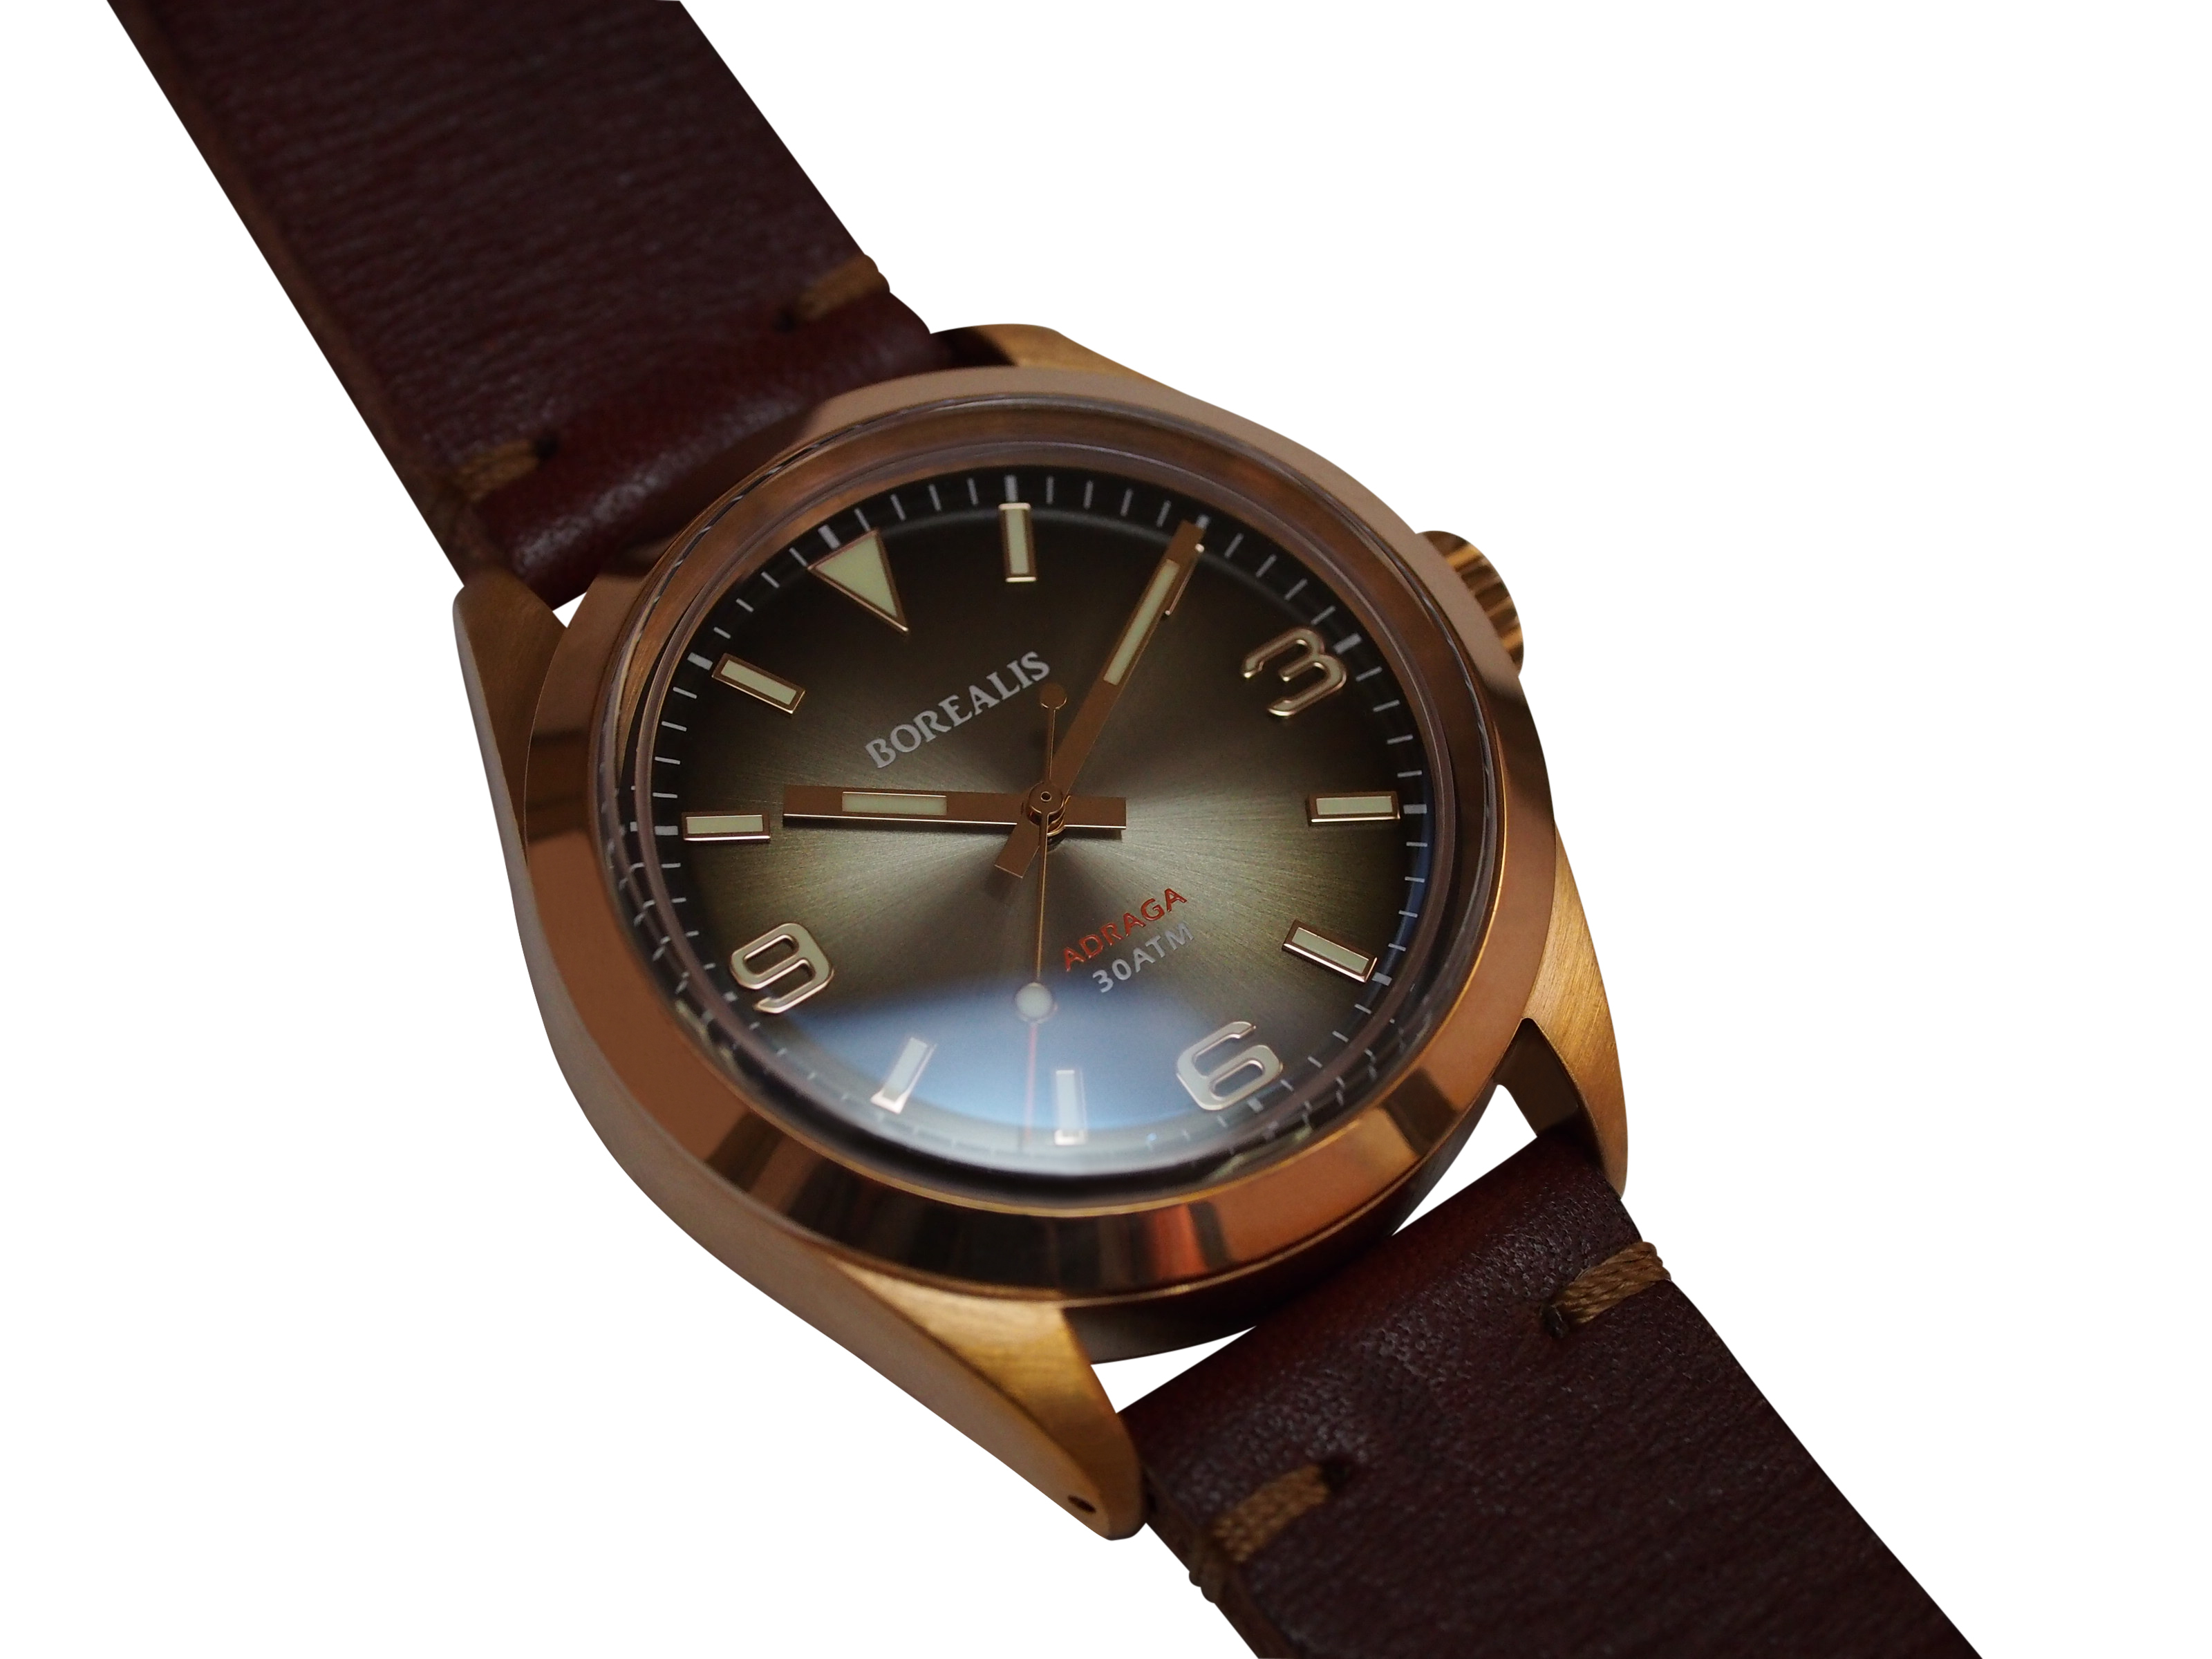 Borealis Adraga Bronze CuSn8 NH38 movement Type D C3X1 Lume